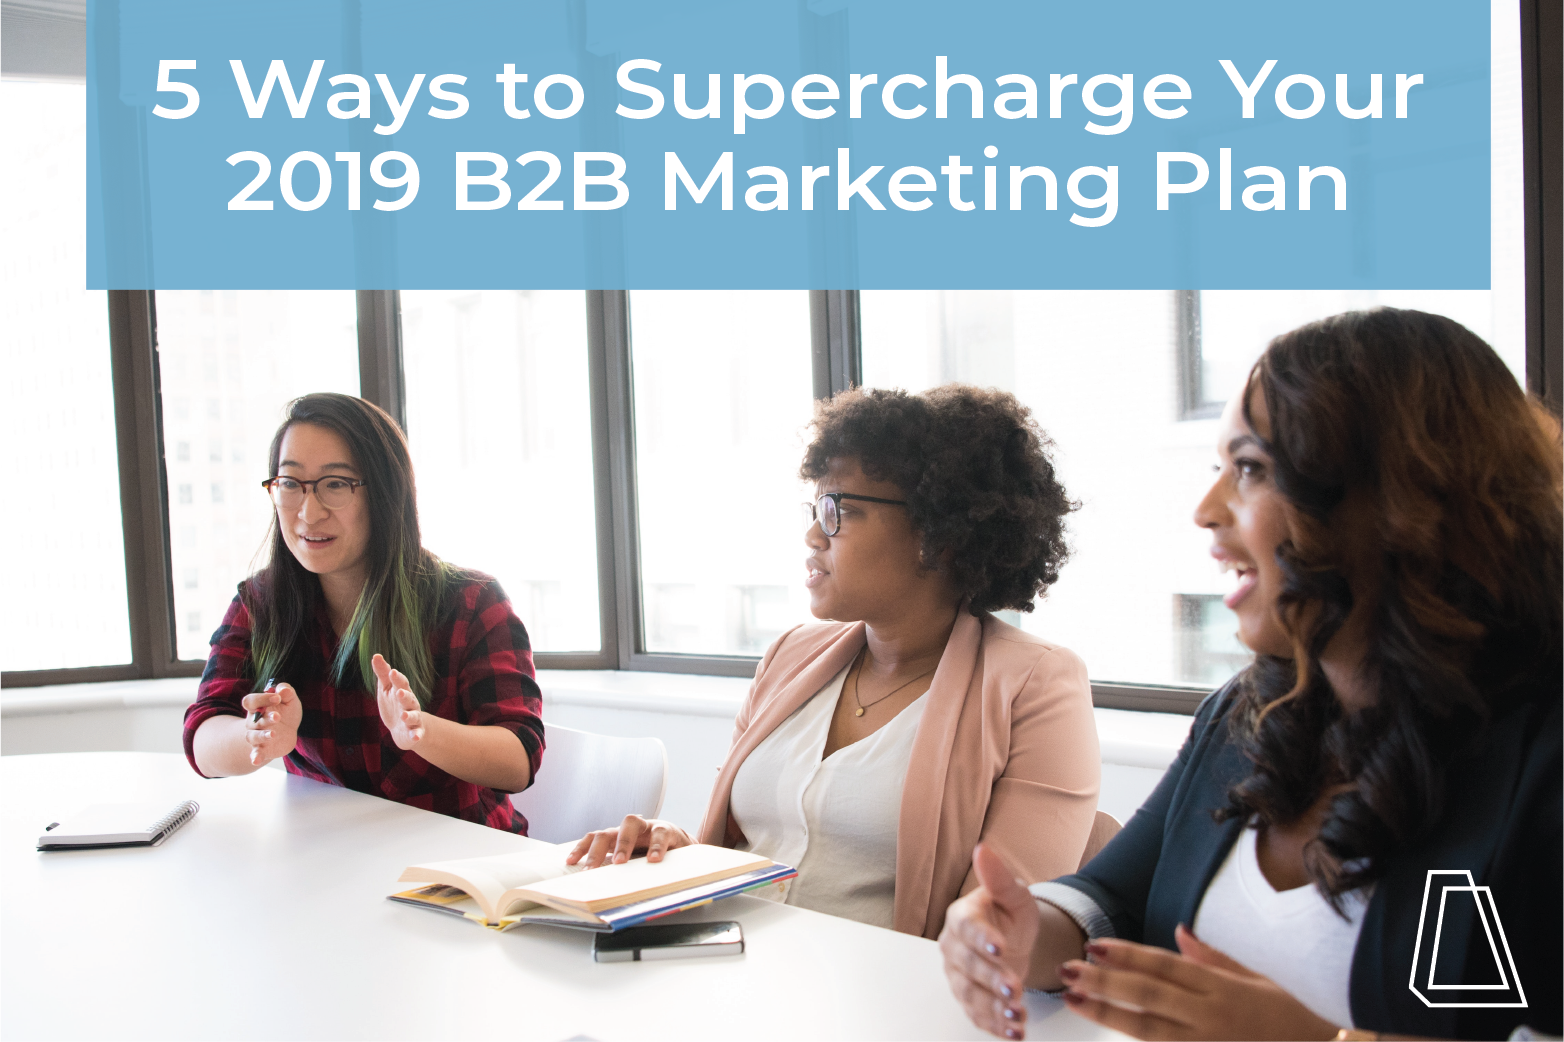 5 Ways to Supercharge Your 2019 B2B Marketing Plan